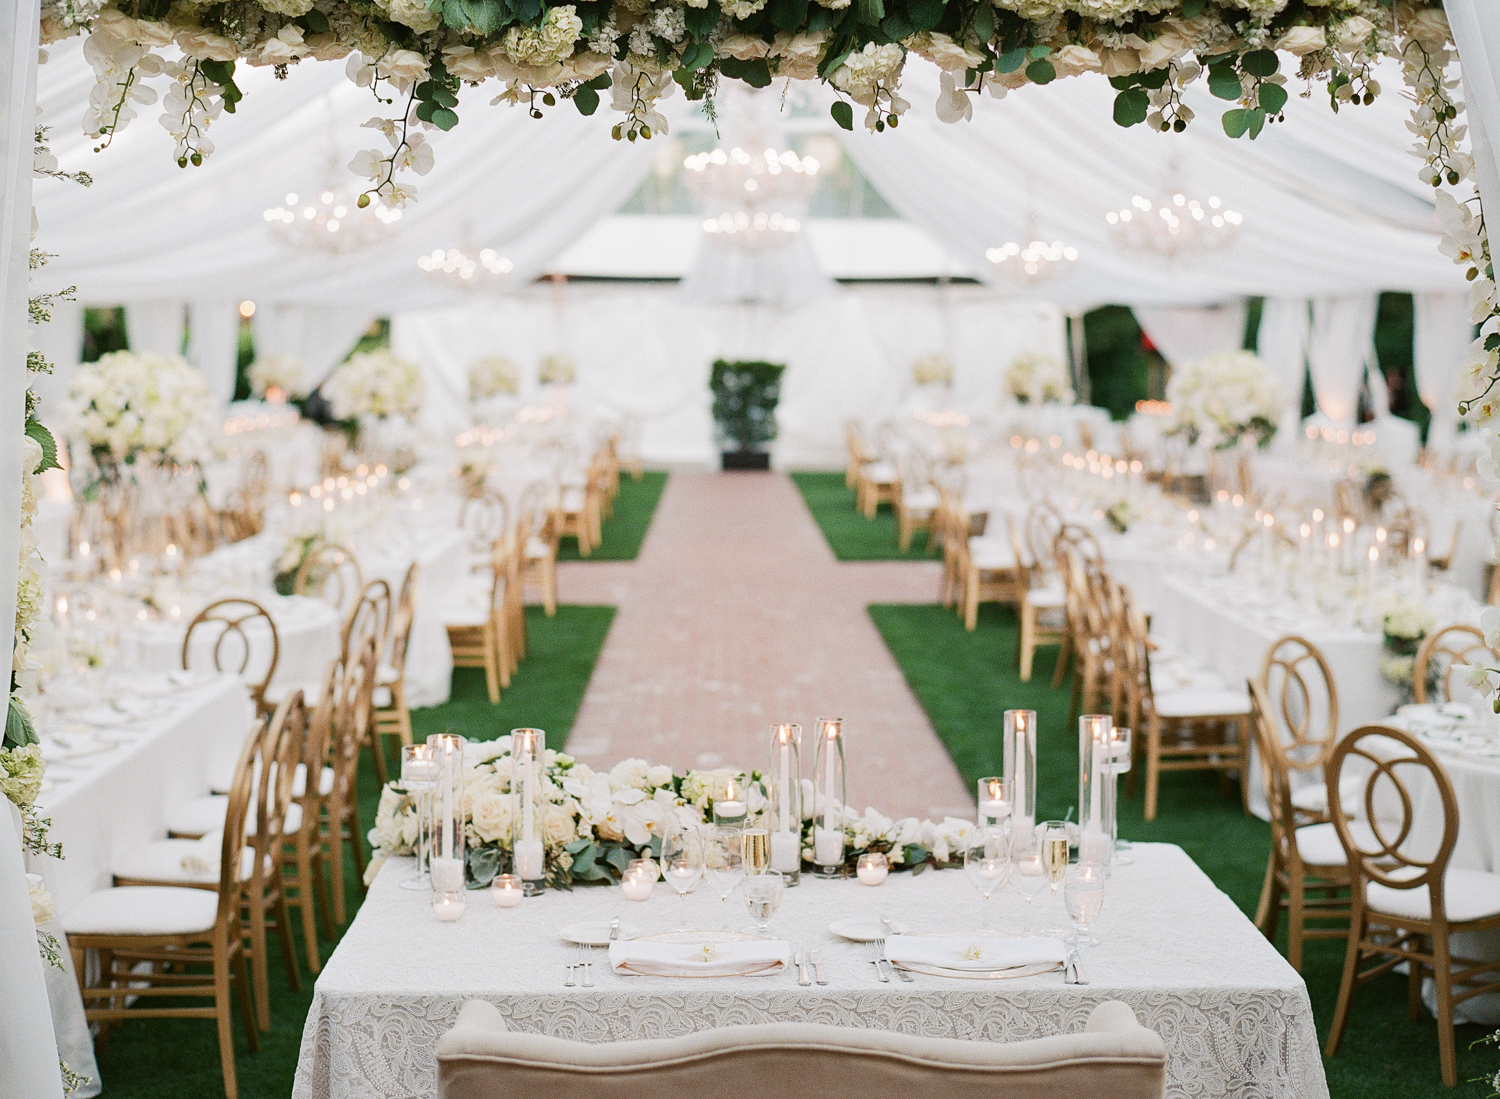 Head table for bride and groom framed by white floral garlands; Sylvie Gil Photography